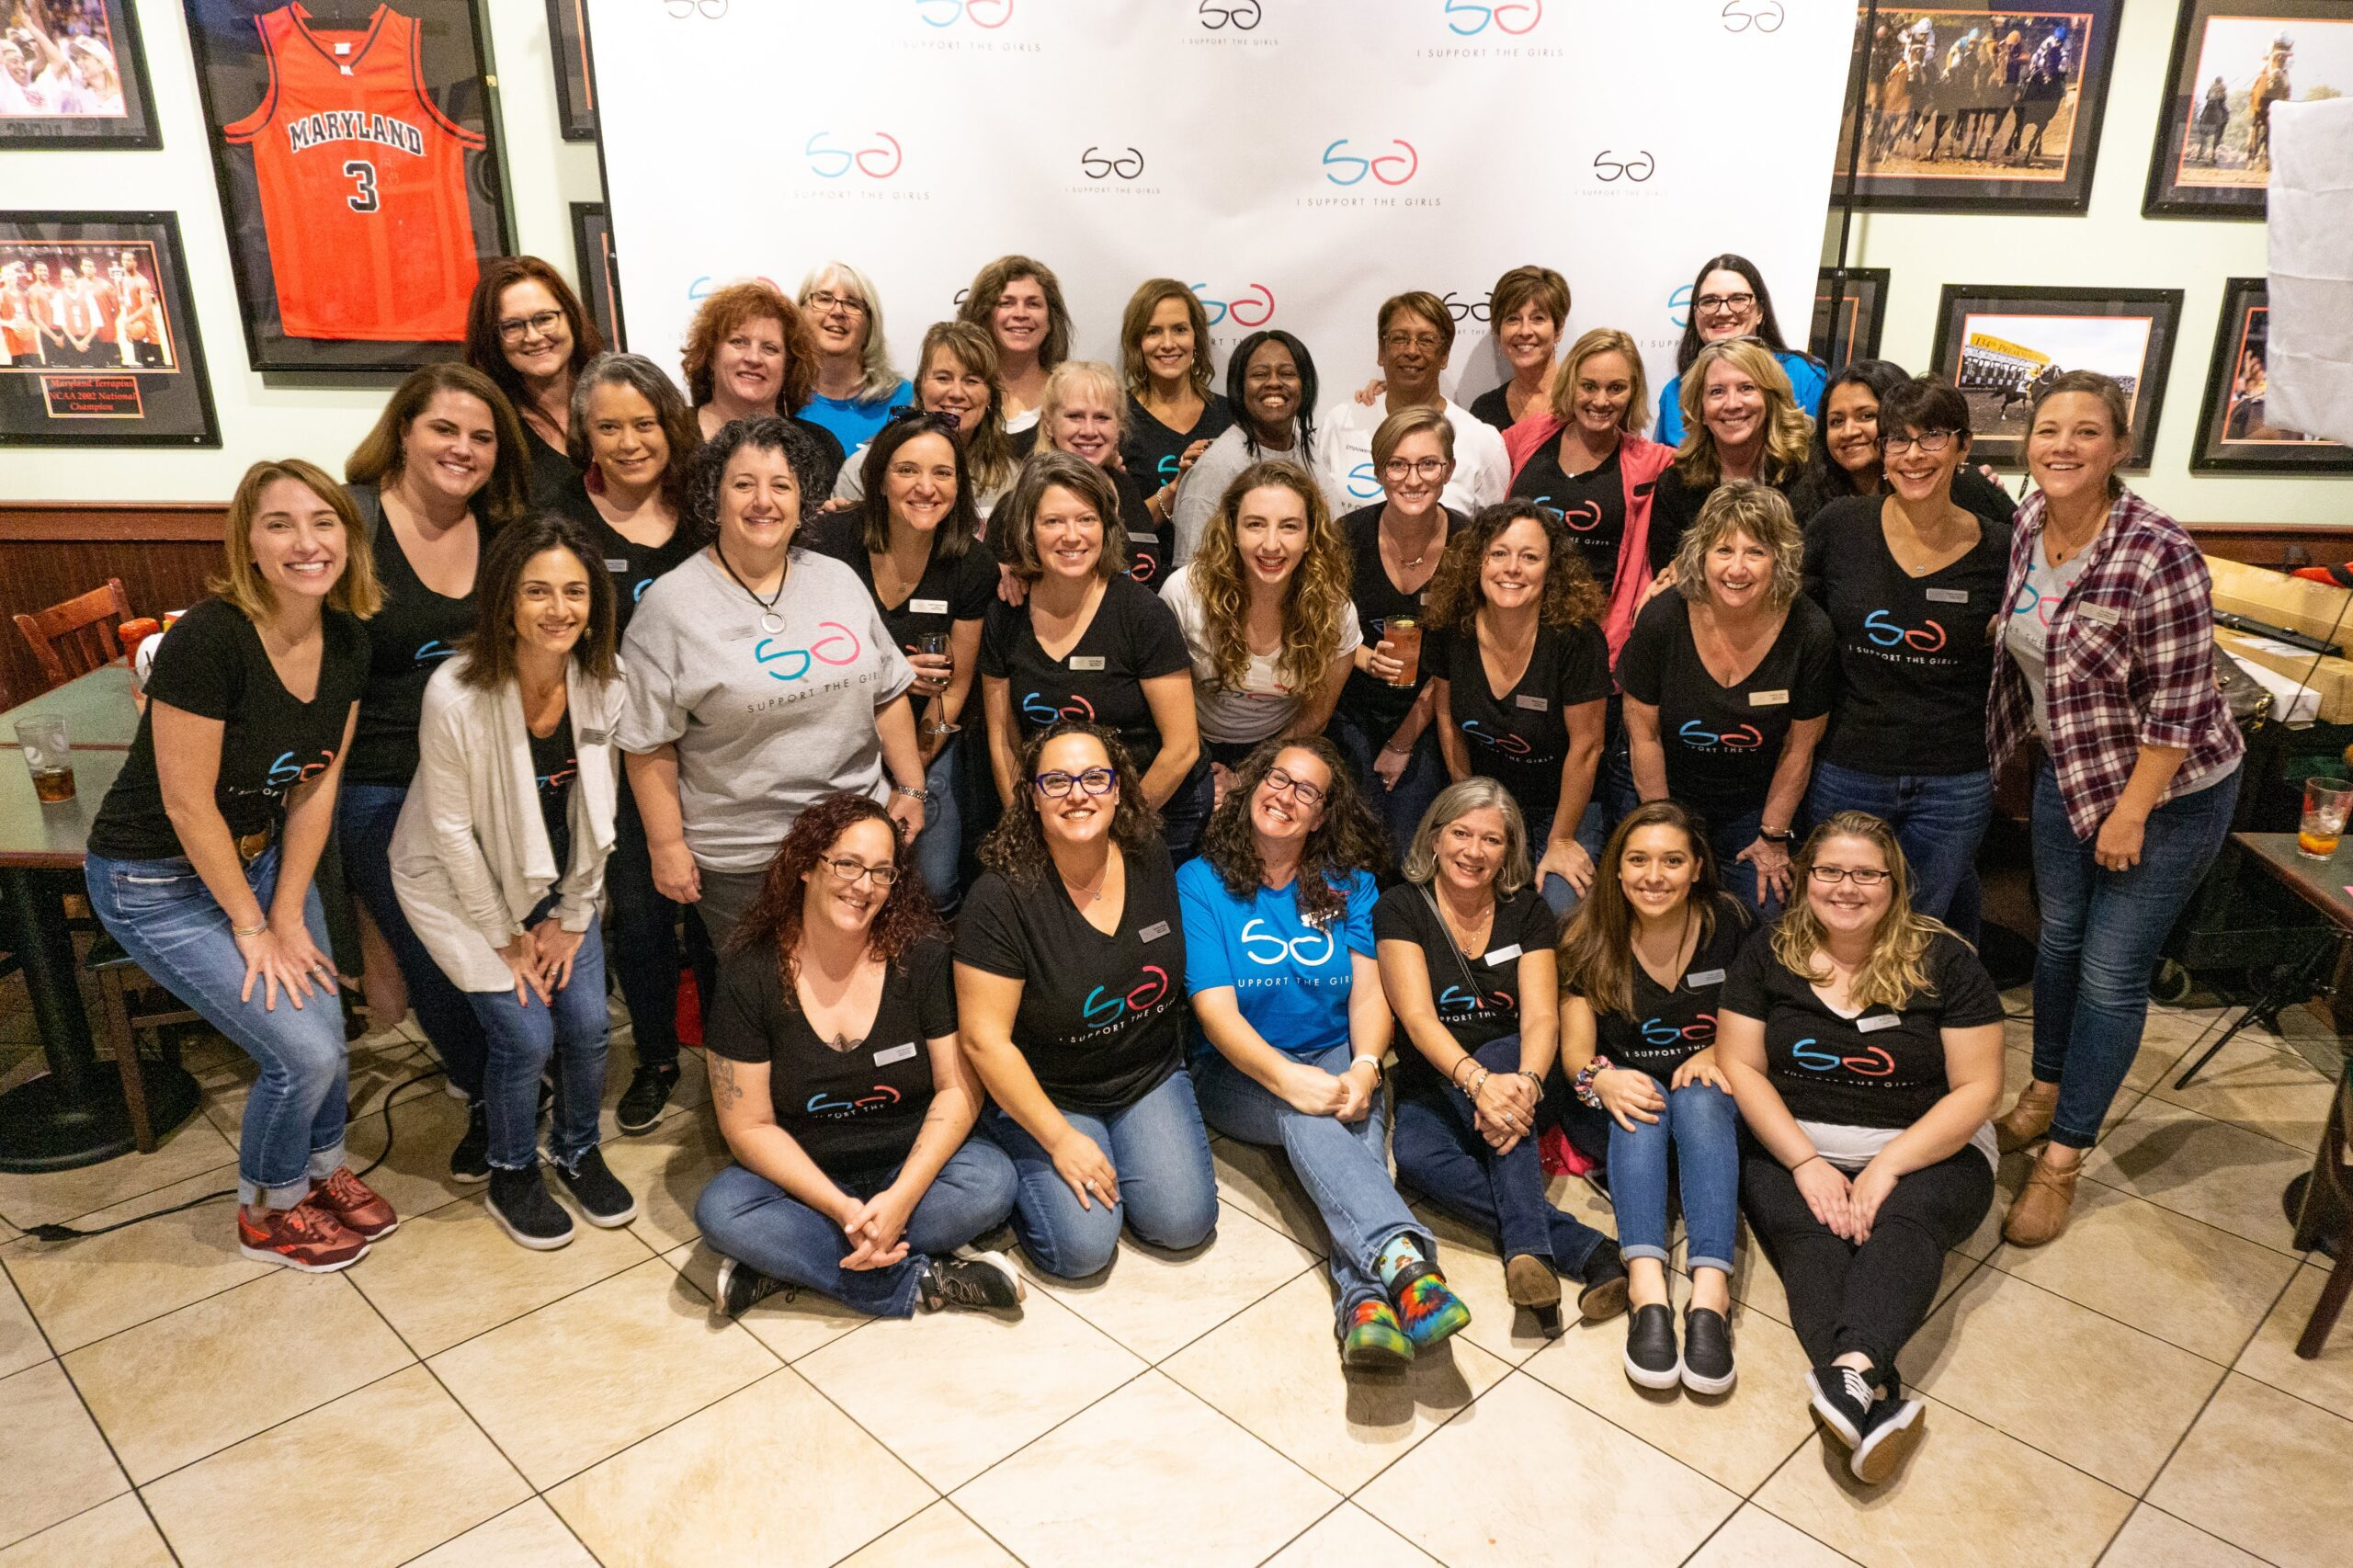 Group photo of I Support the Girls staff and Affiliates.